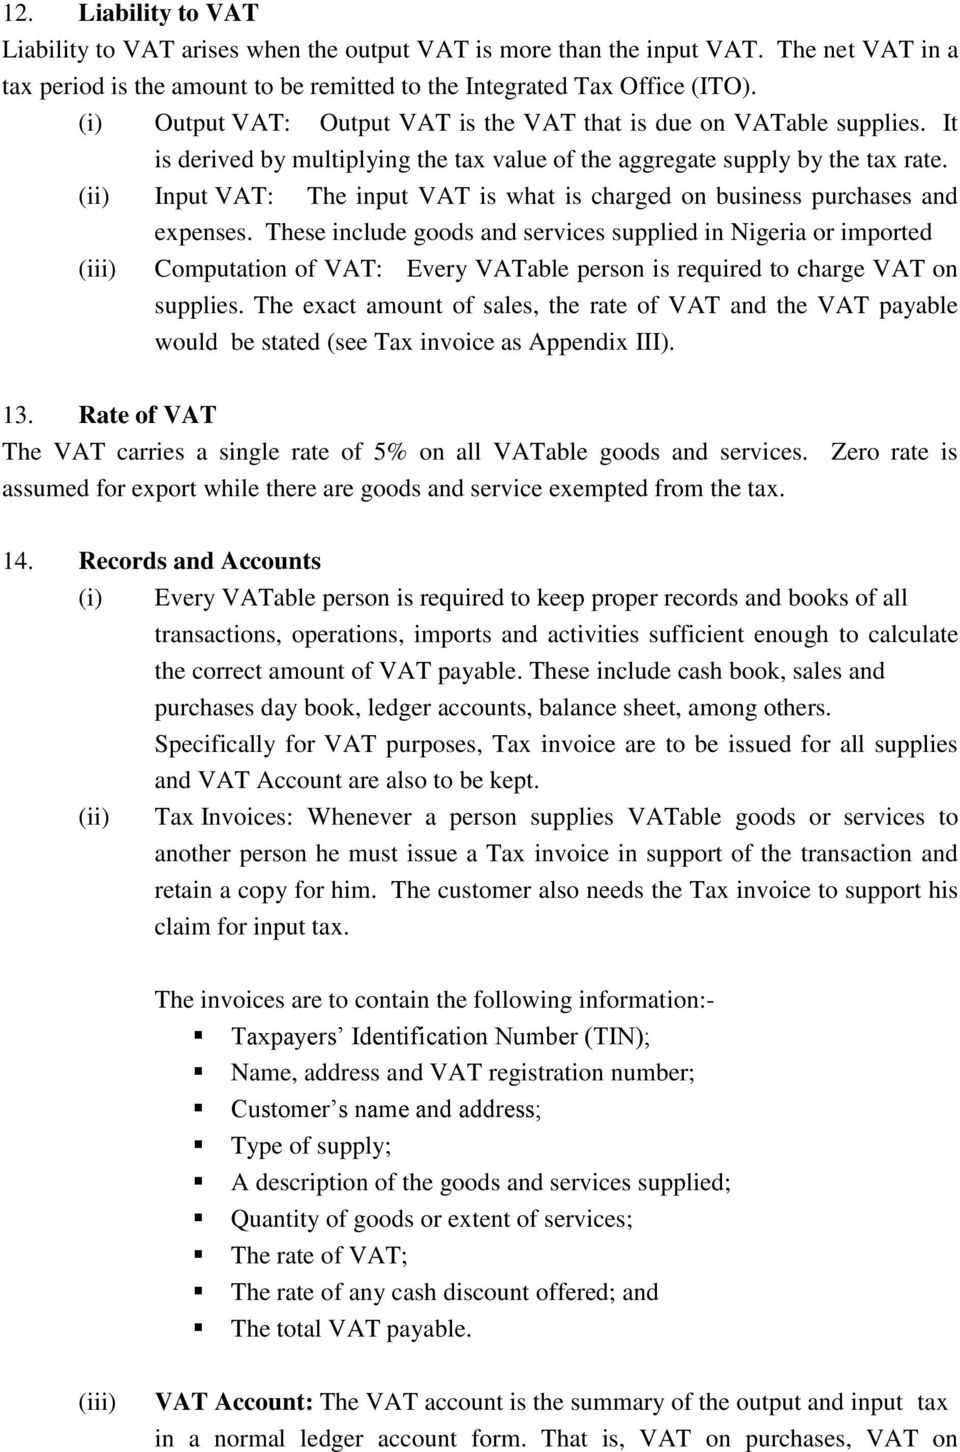 (ii) Input VAT: The input VAT is what is charged on business purchases and expenses.